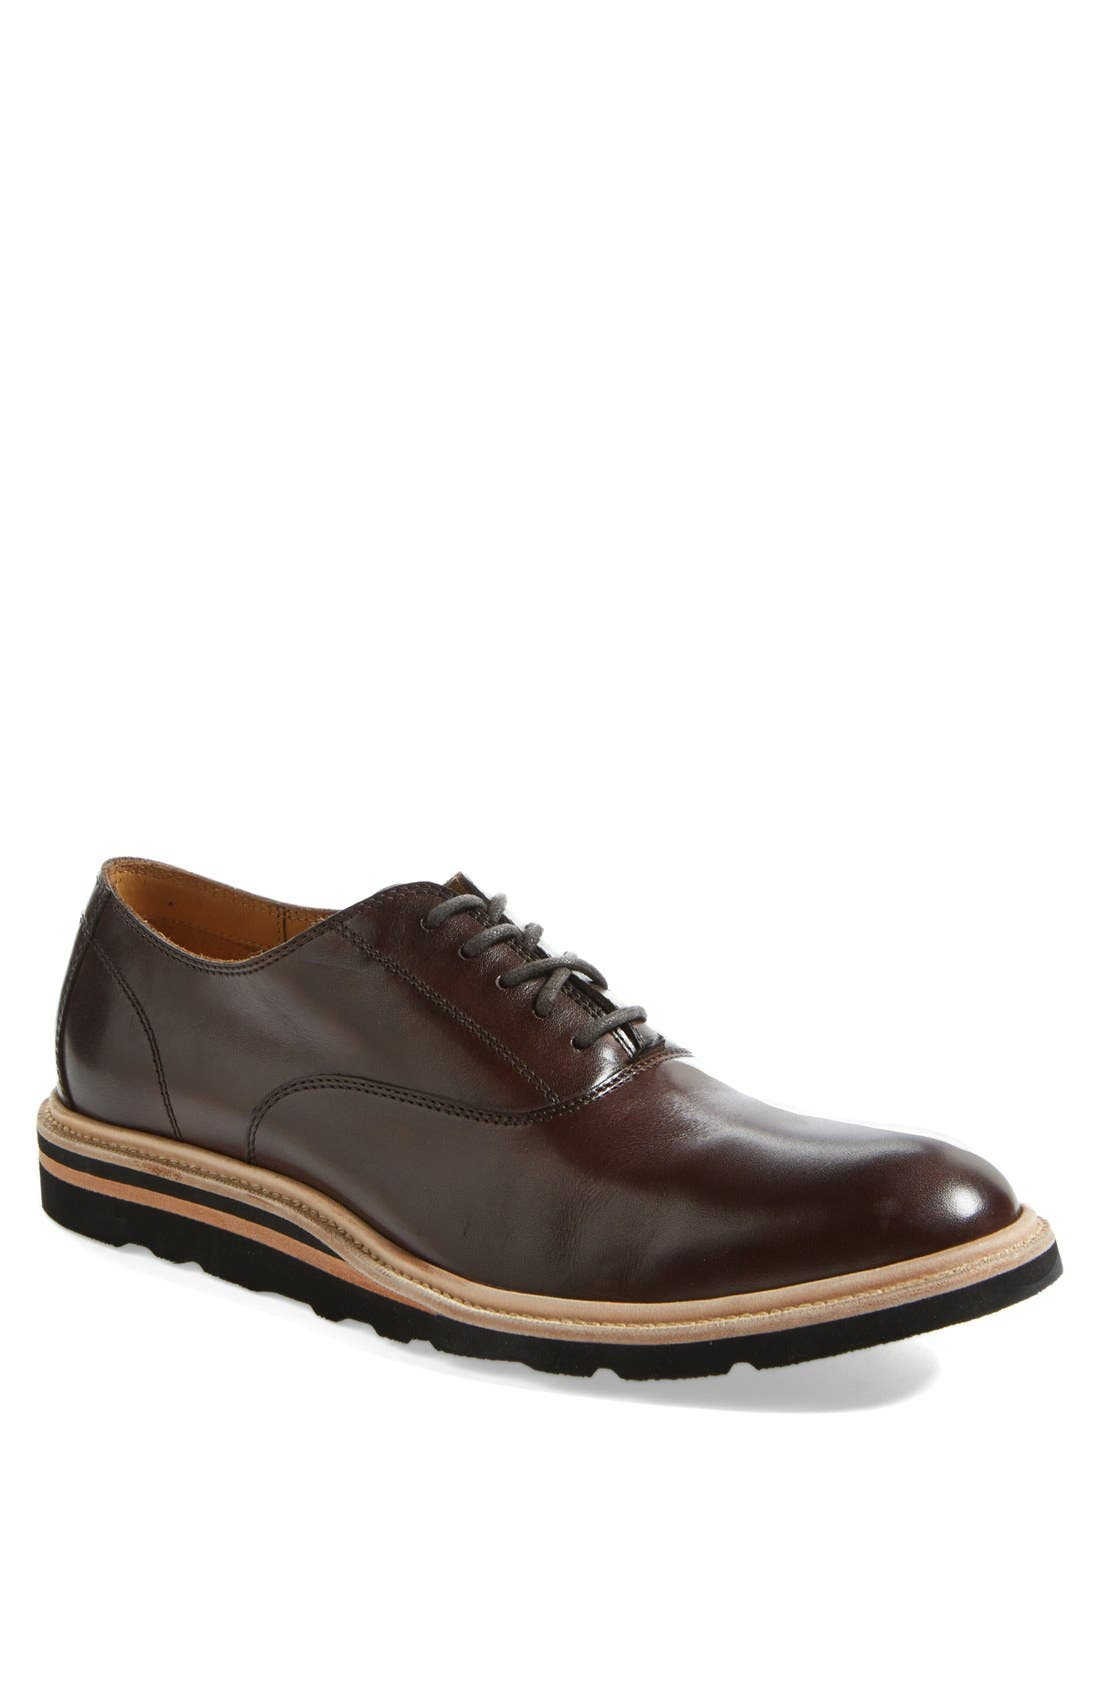 Main Image - Cole Haan 'Christy' Wedge Sole Oxford (Men)